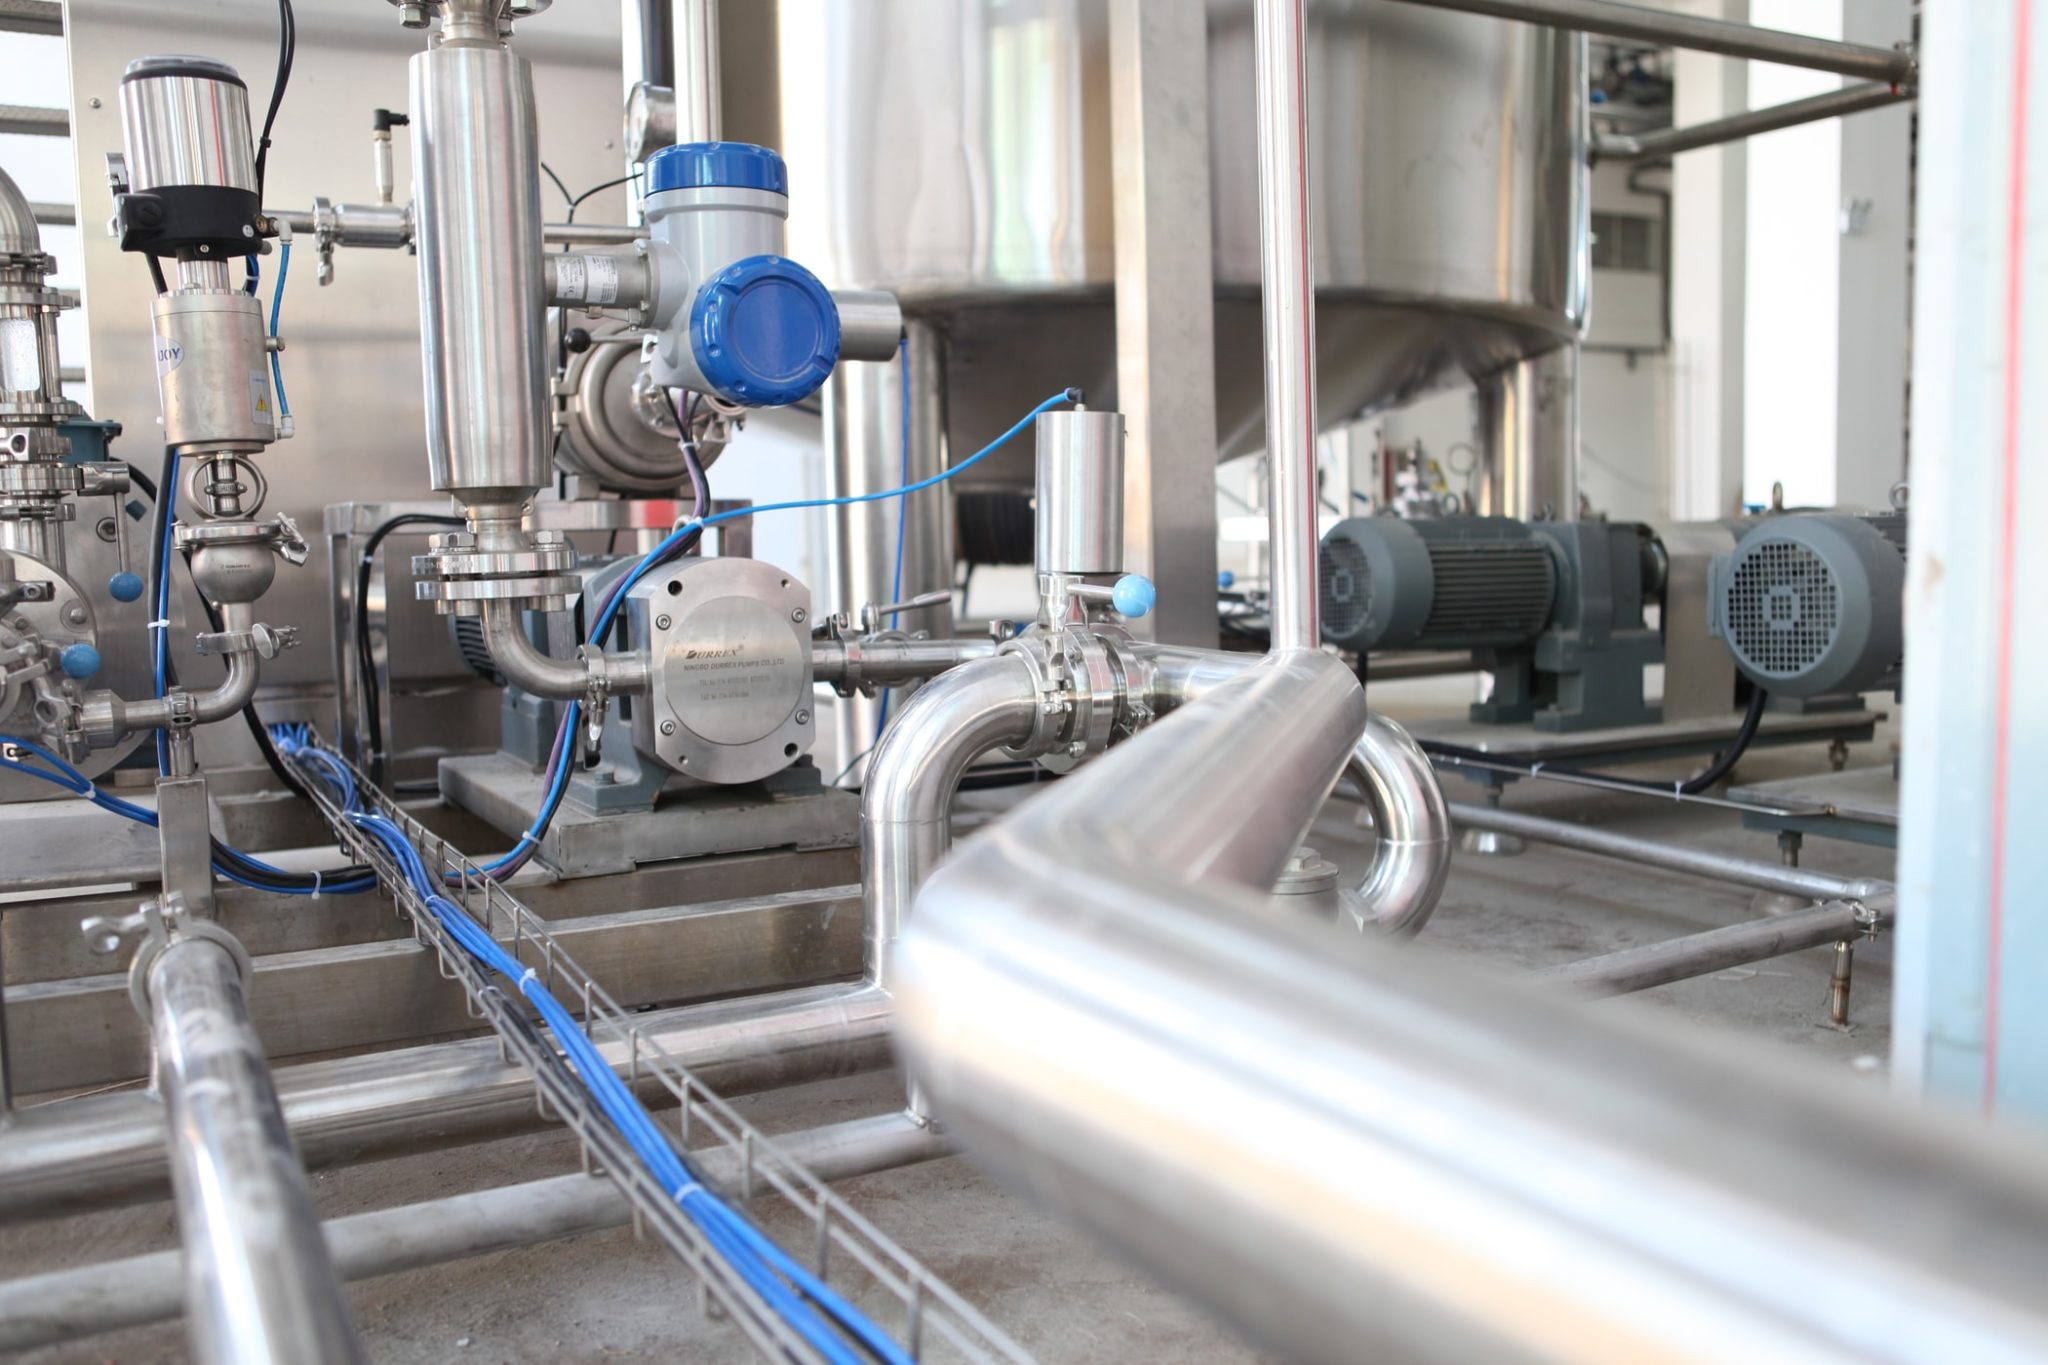 motion & control system benefits from factory automation solutions